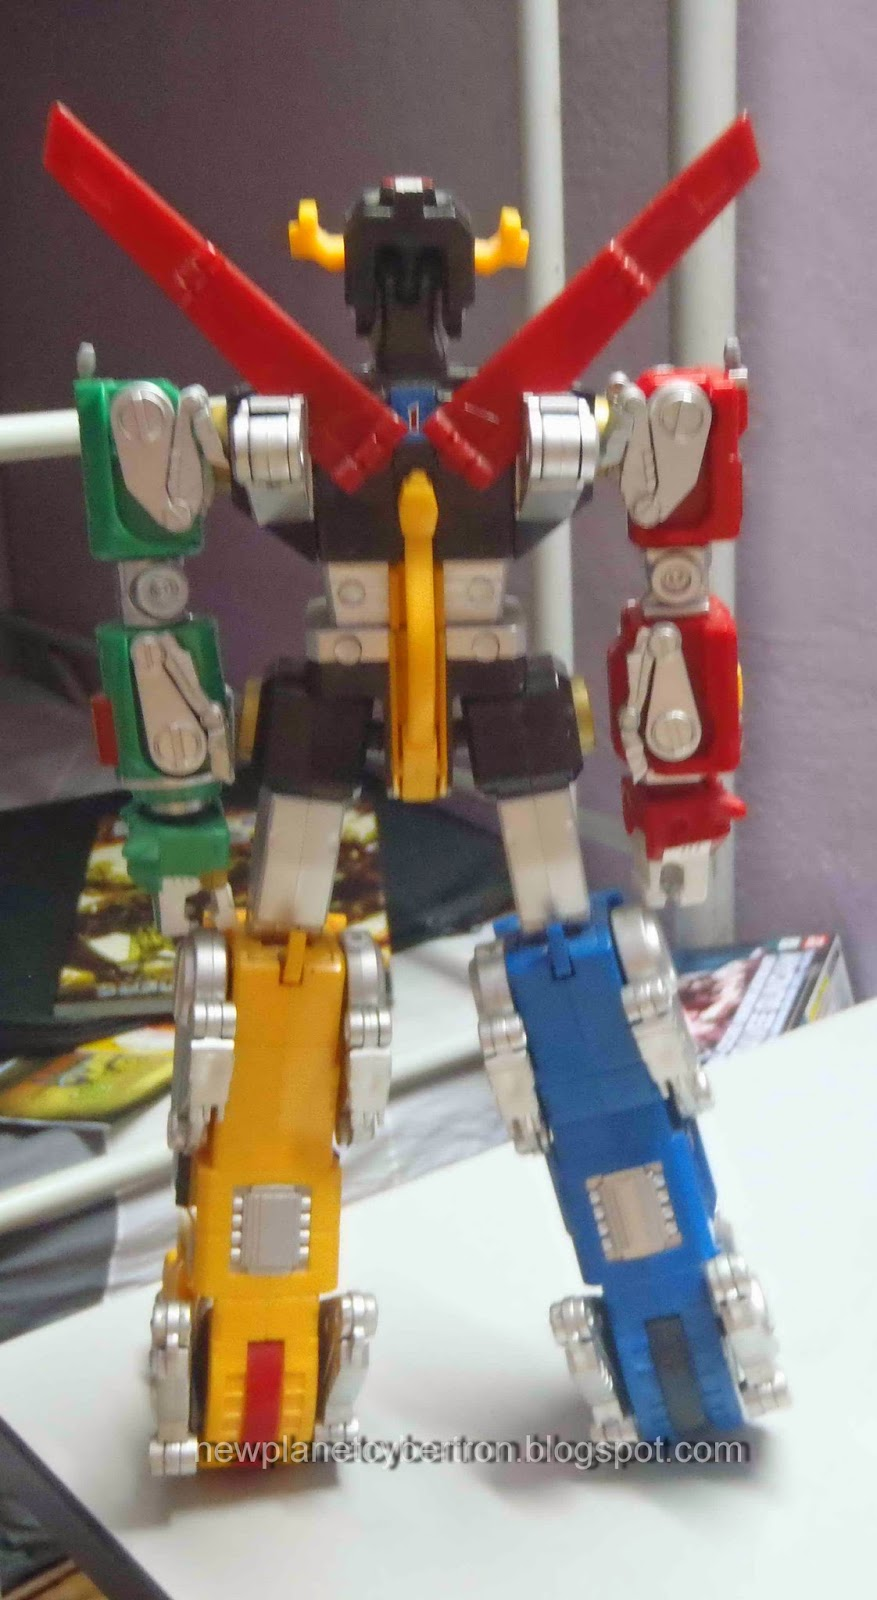 New Planet Cybertron: Misc Review: Collector Set Voltron ...